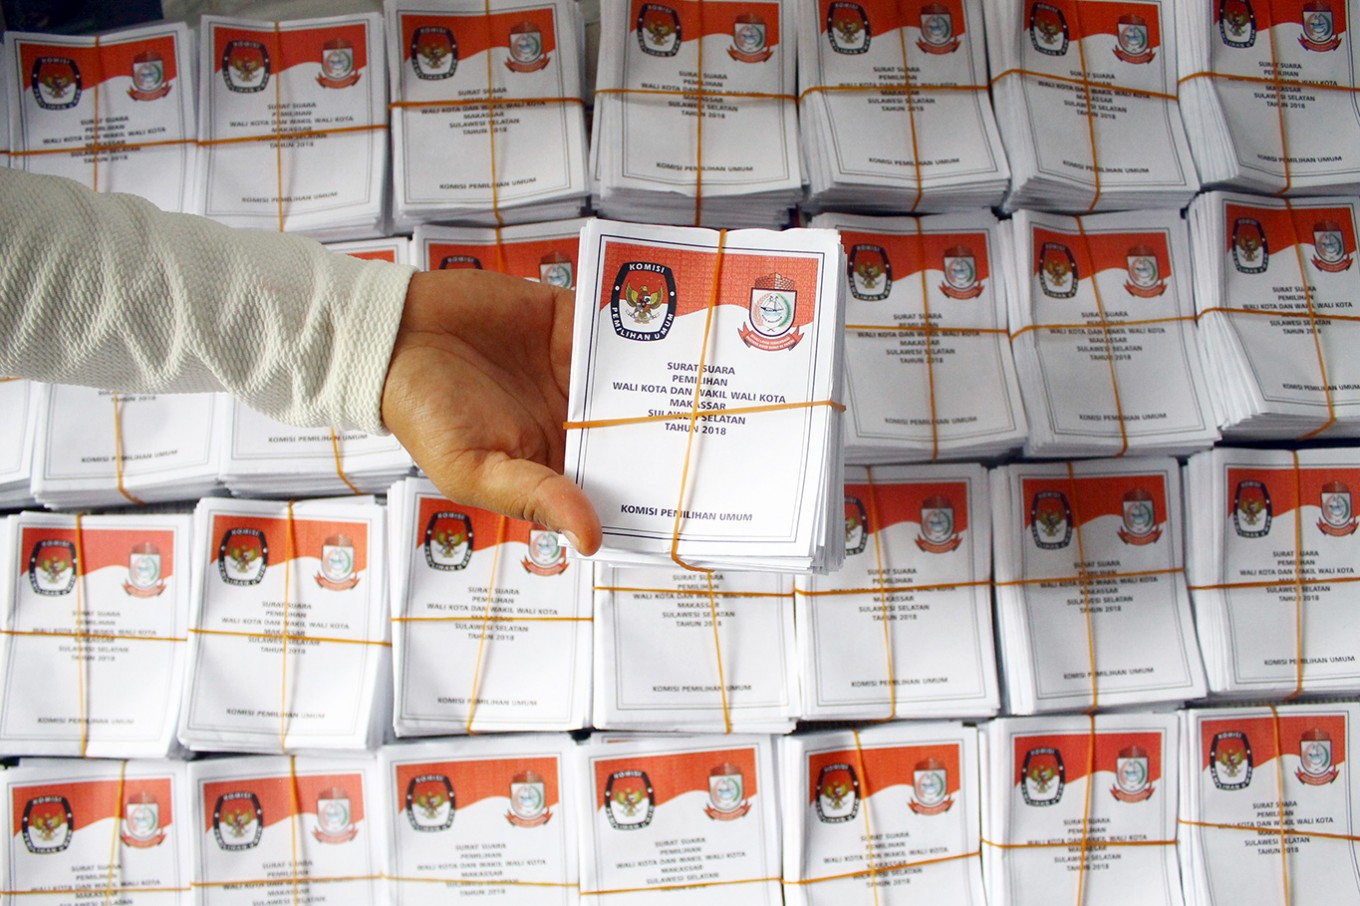 Quick count shows blank box wins, setting up Makassar mayoral election in 2020